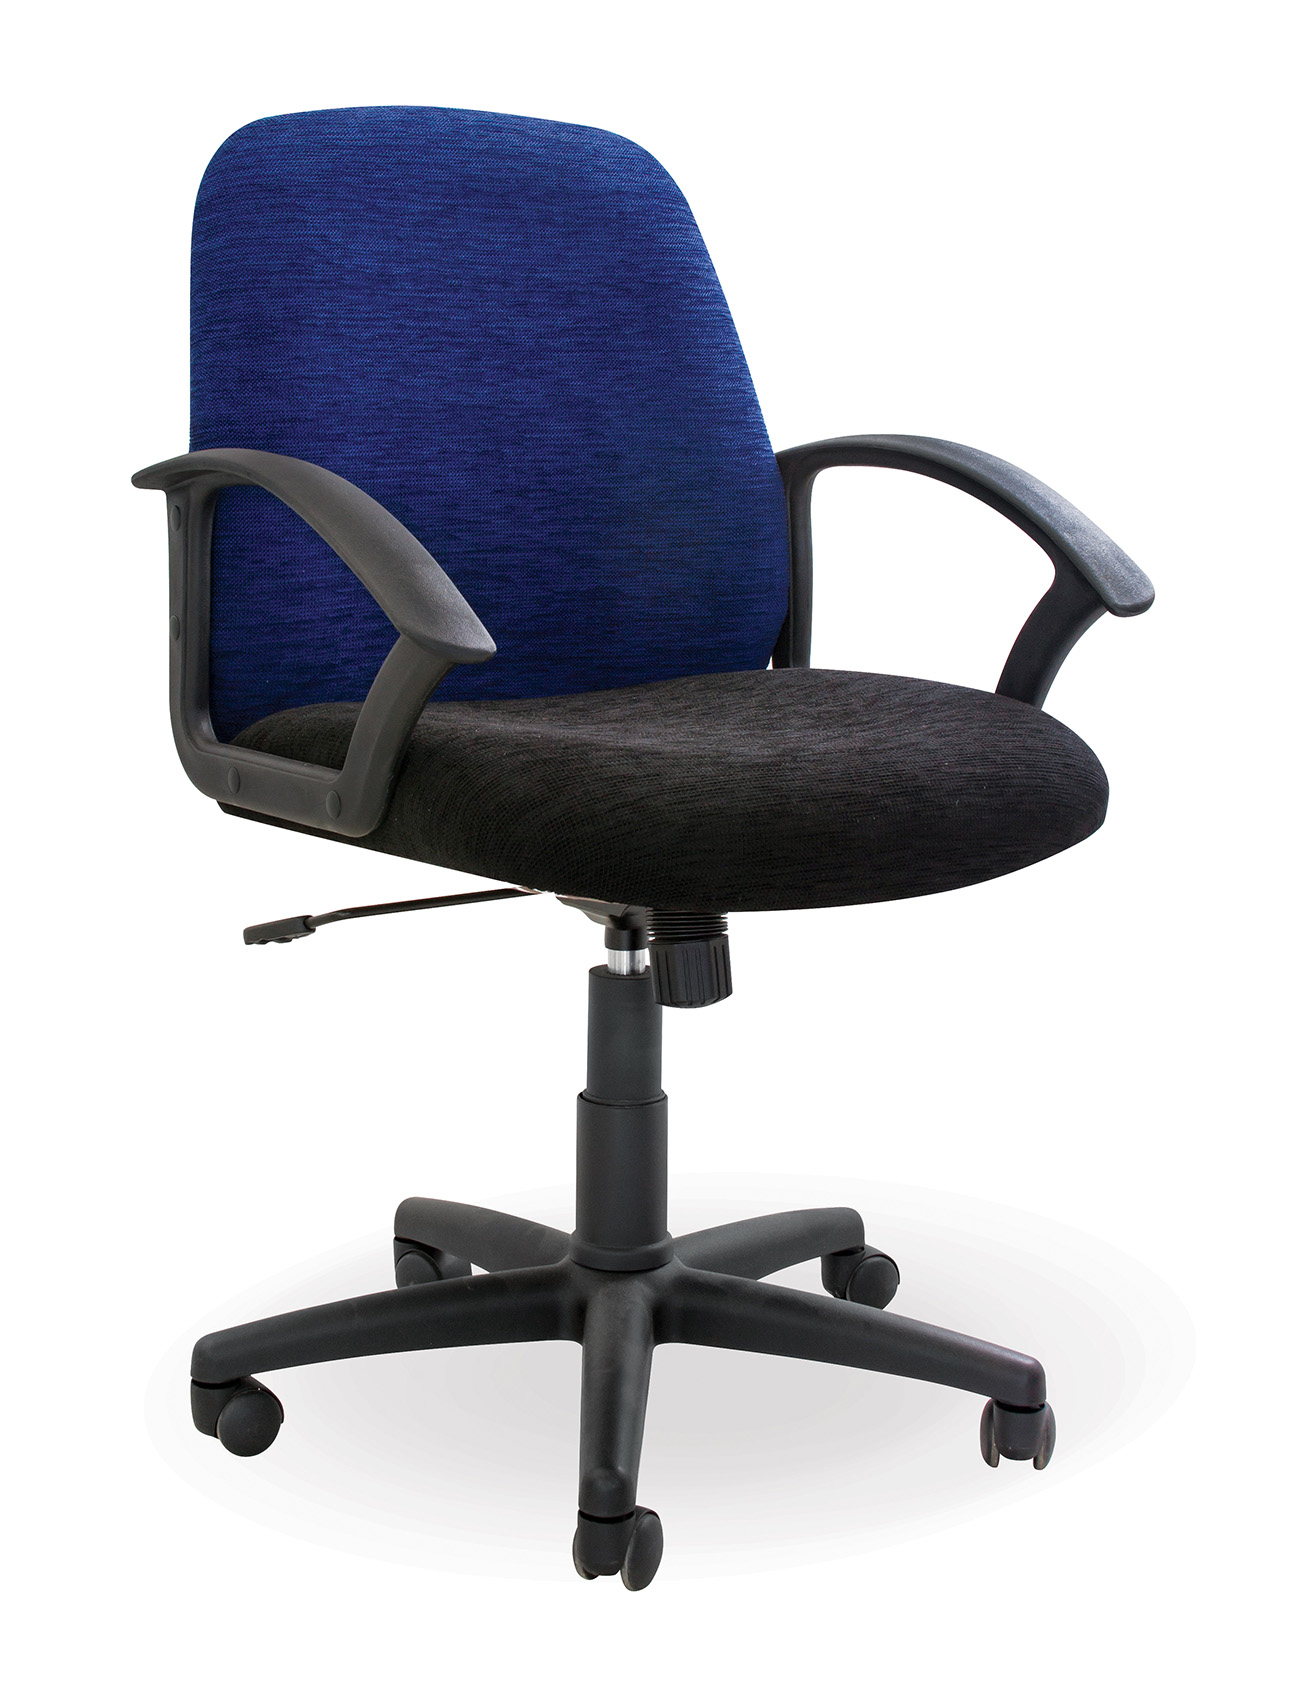 Picture of: Modern Office Chair At An Amazing Discounted Price